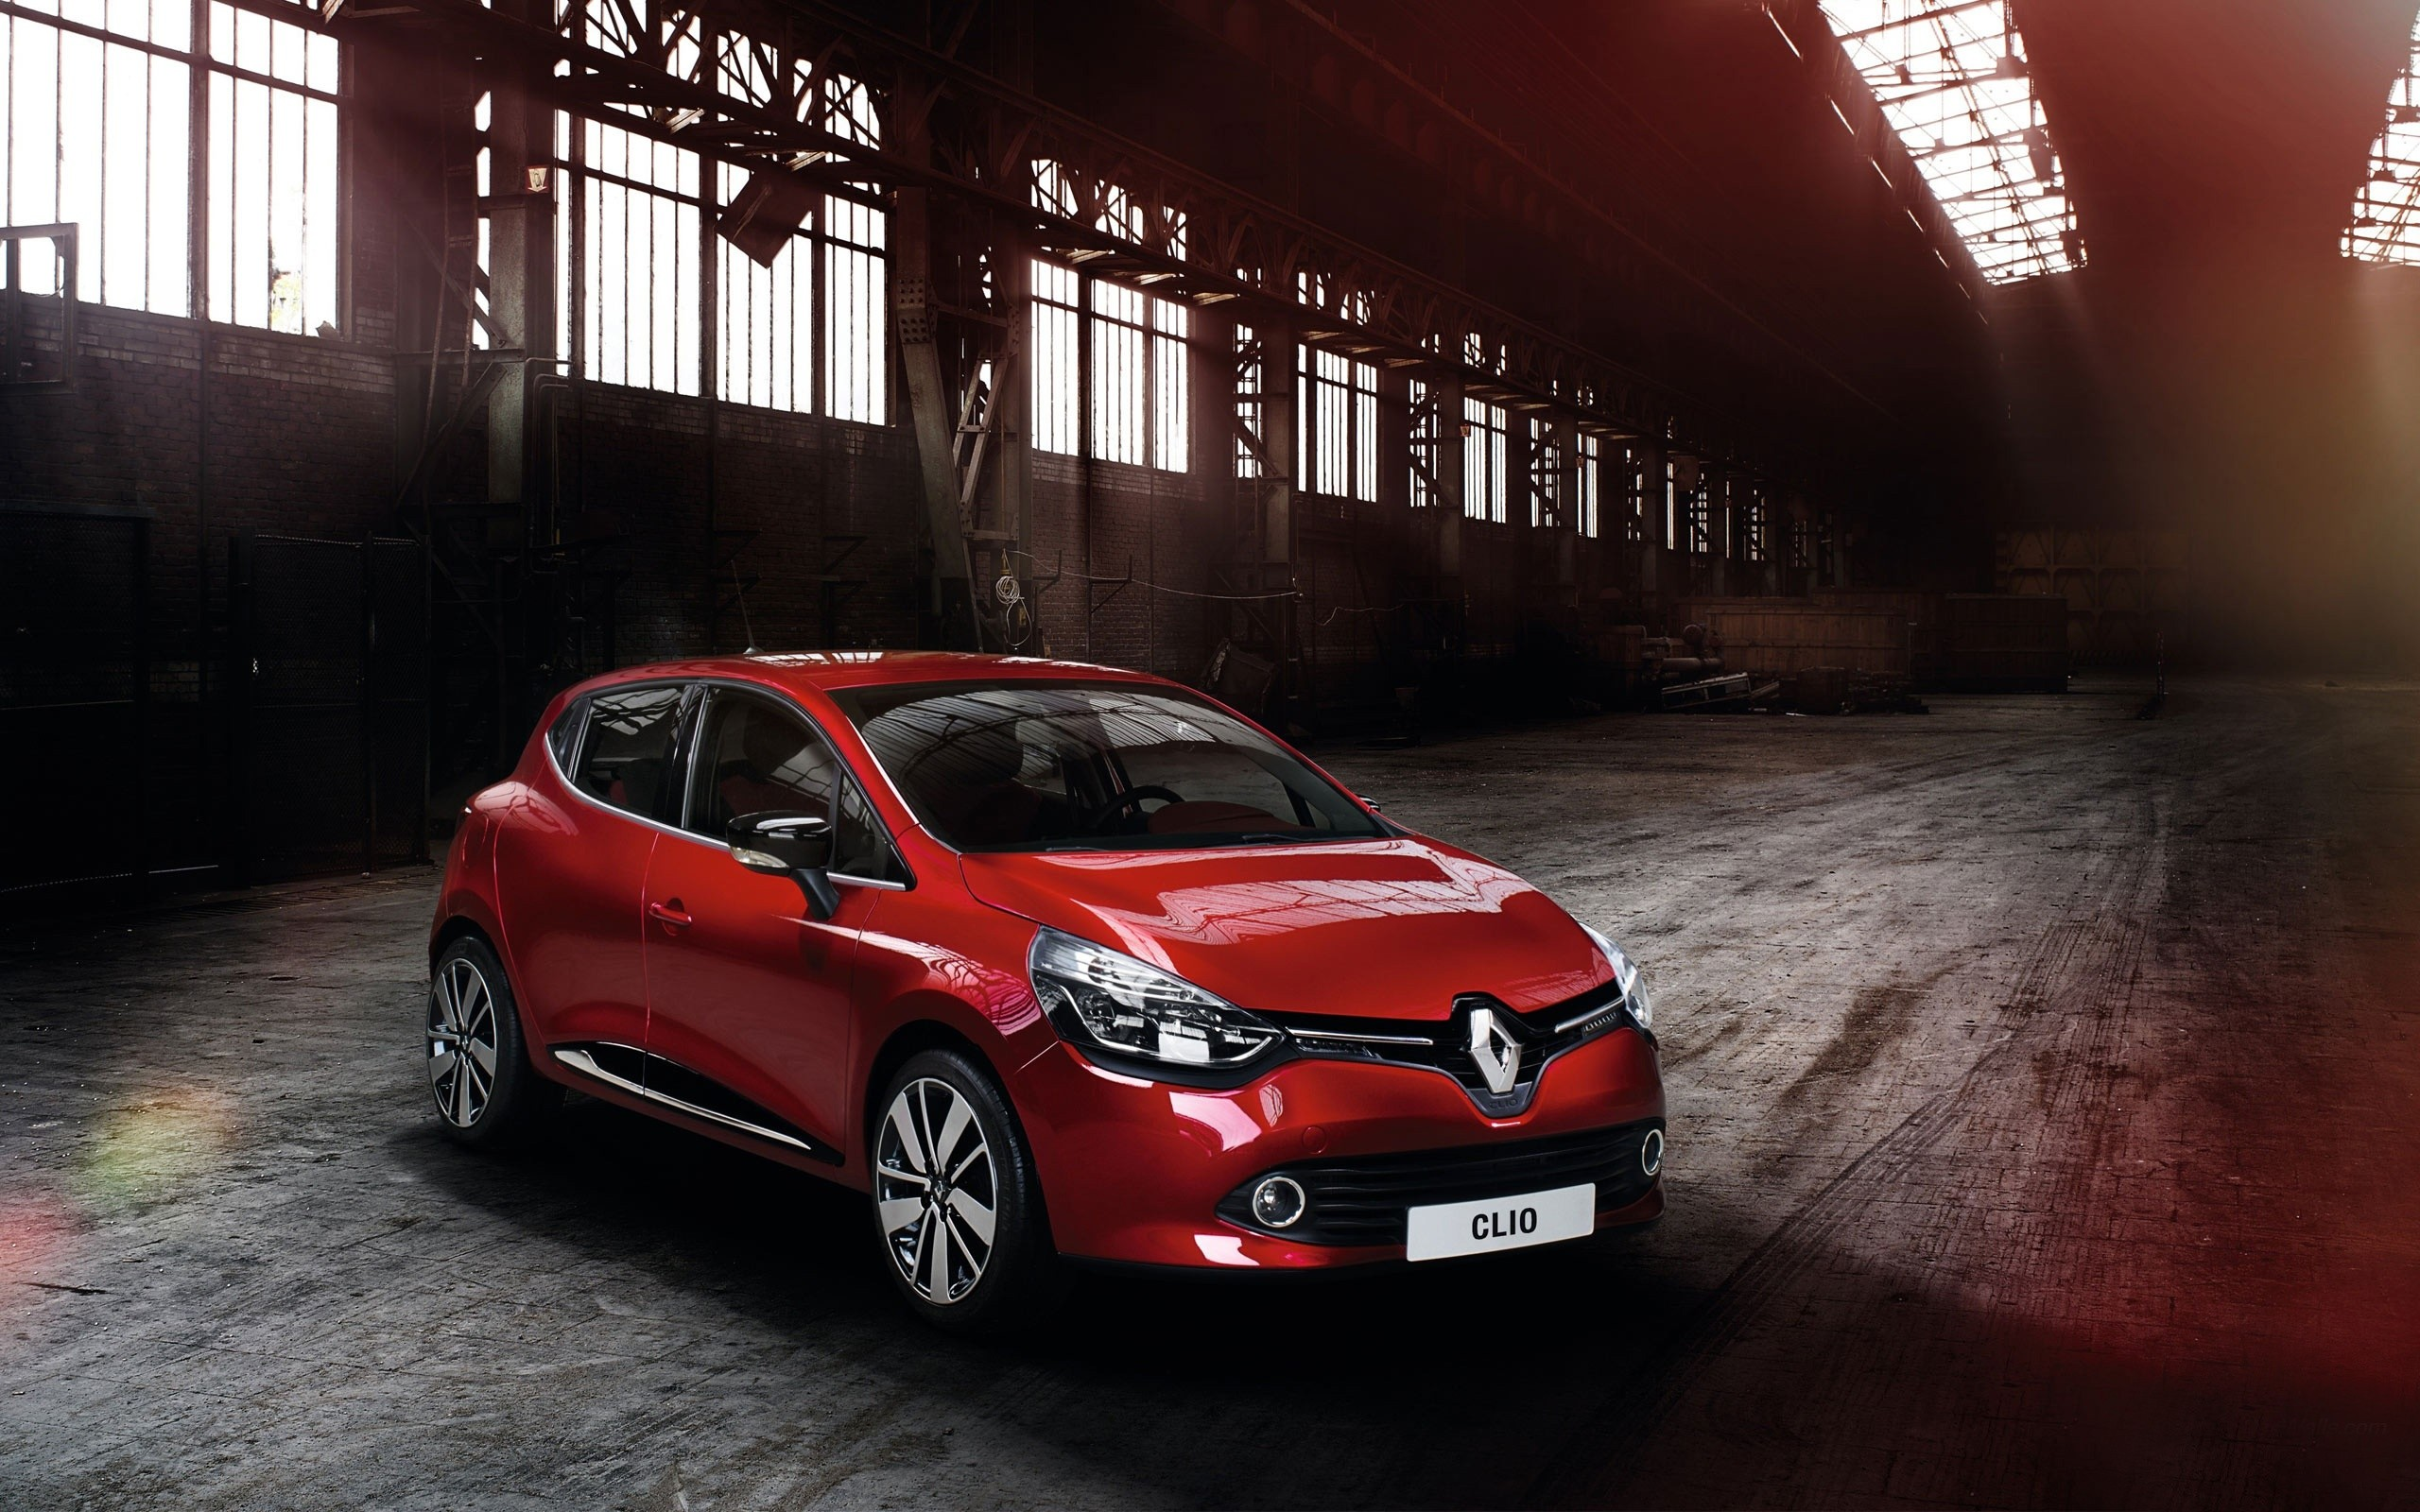 Red Renault Clio 2012 Wallpapers Red Renault Clio 2012